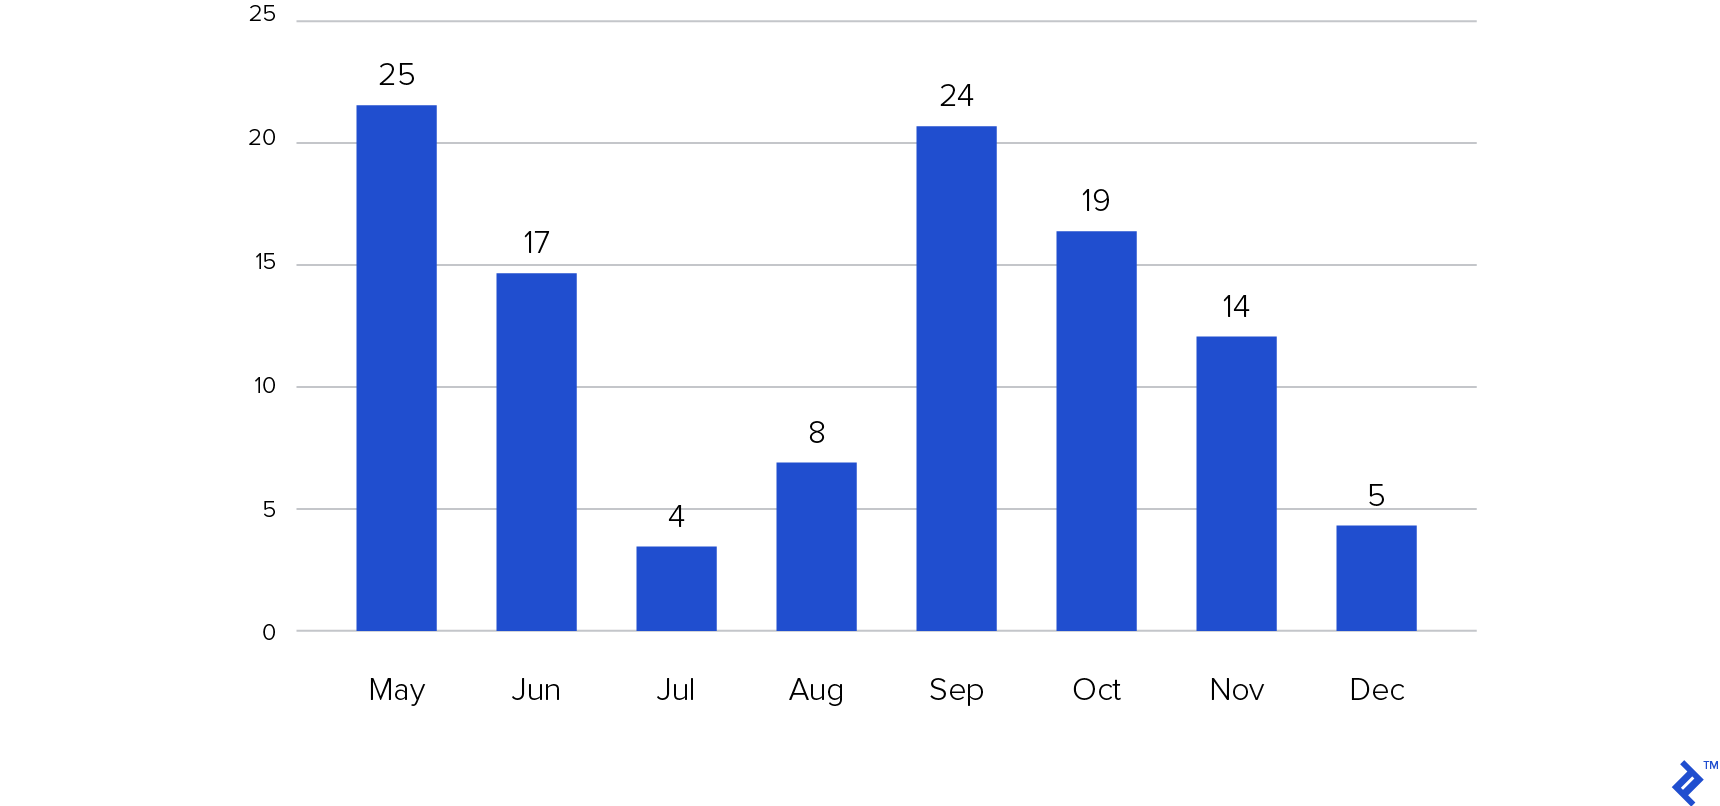 Agile conferences activity by month